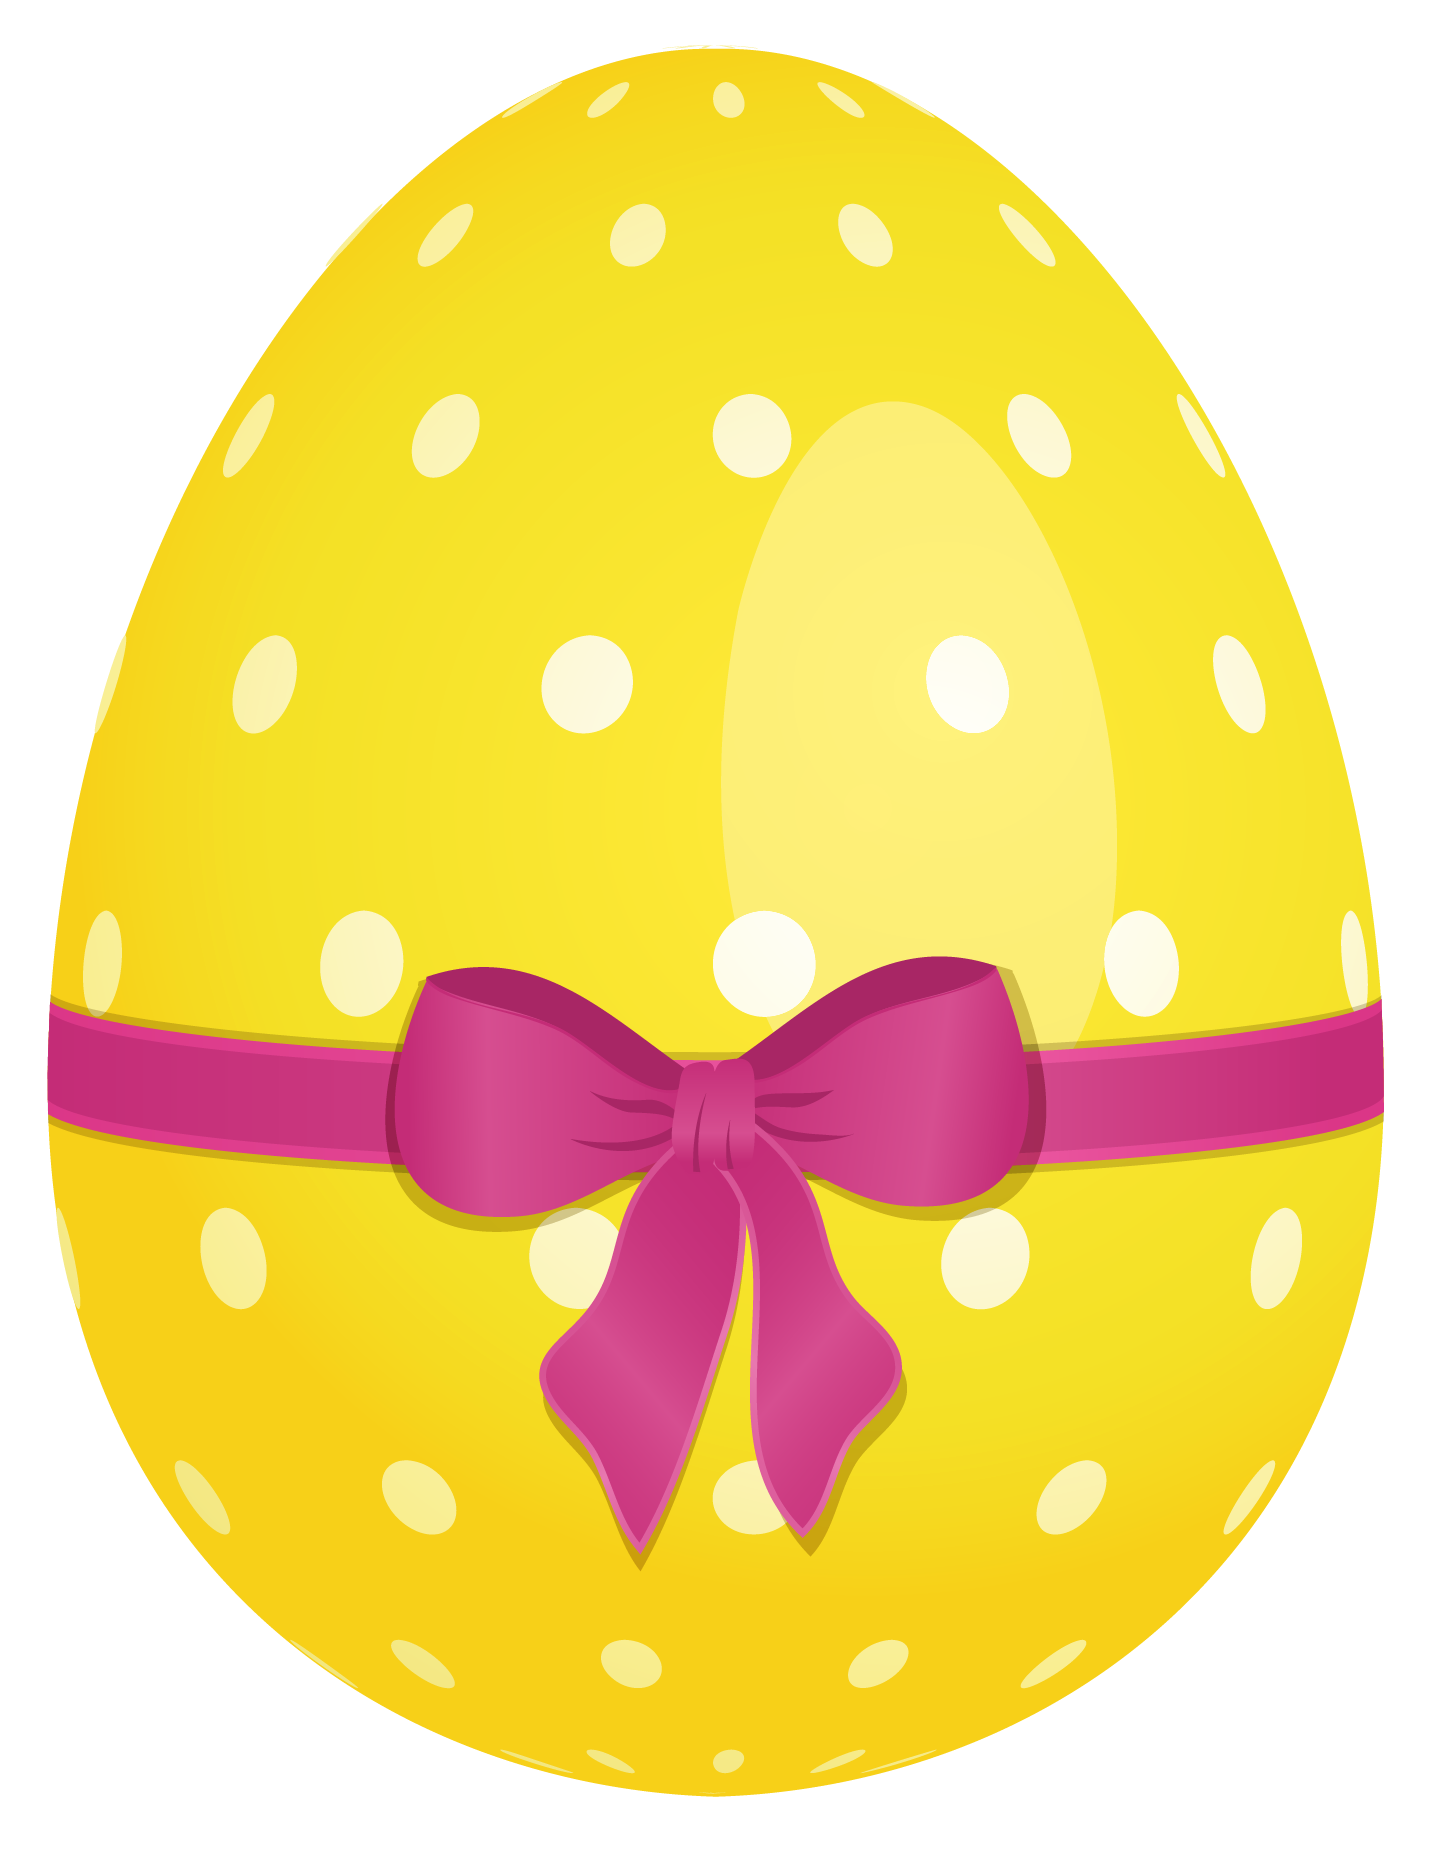 Easter Egg yellow drawing free image